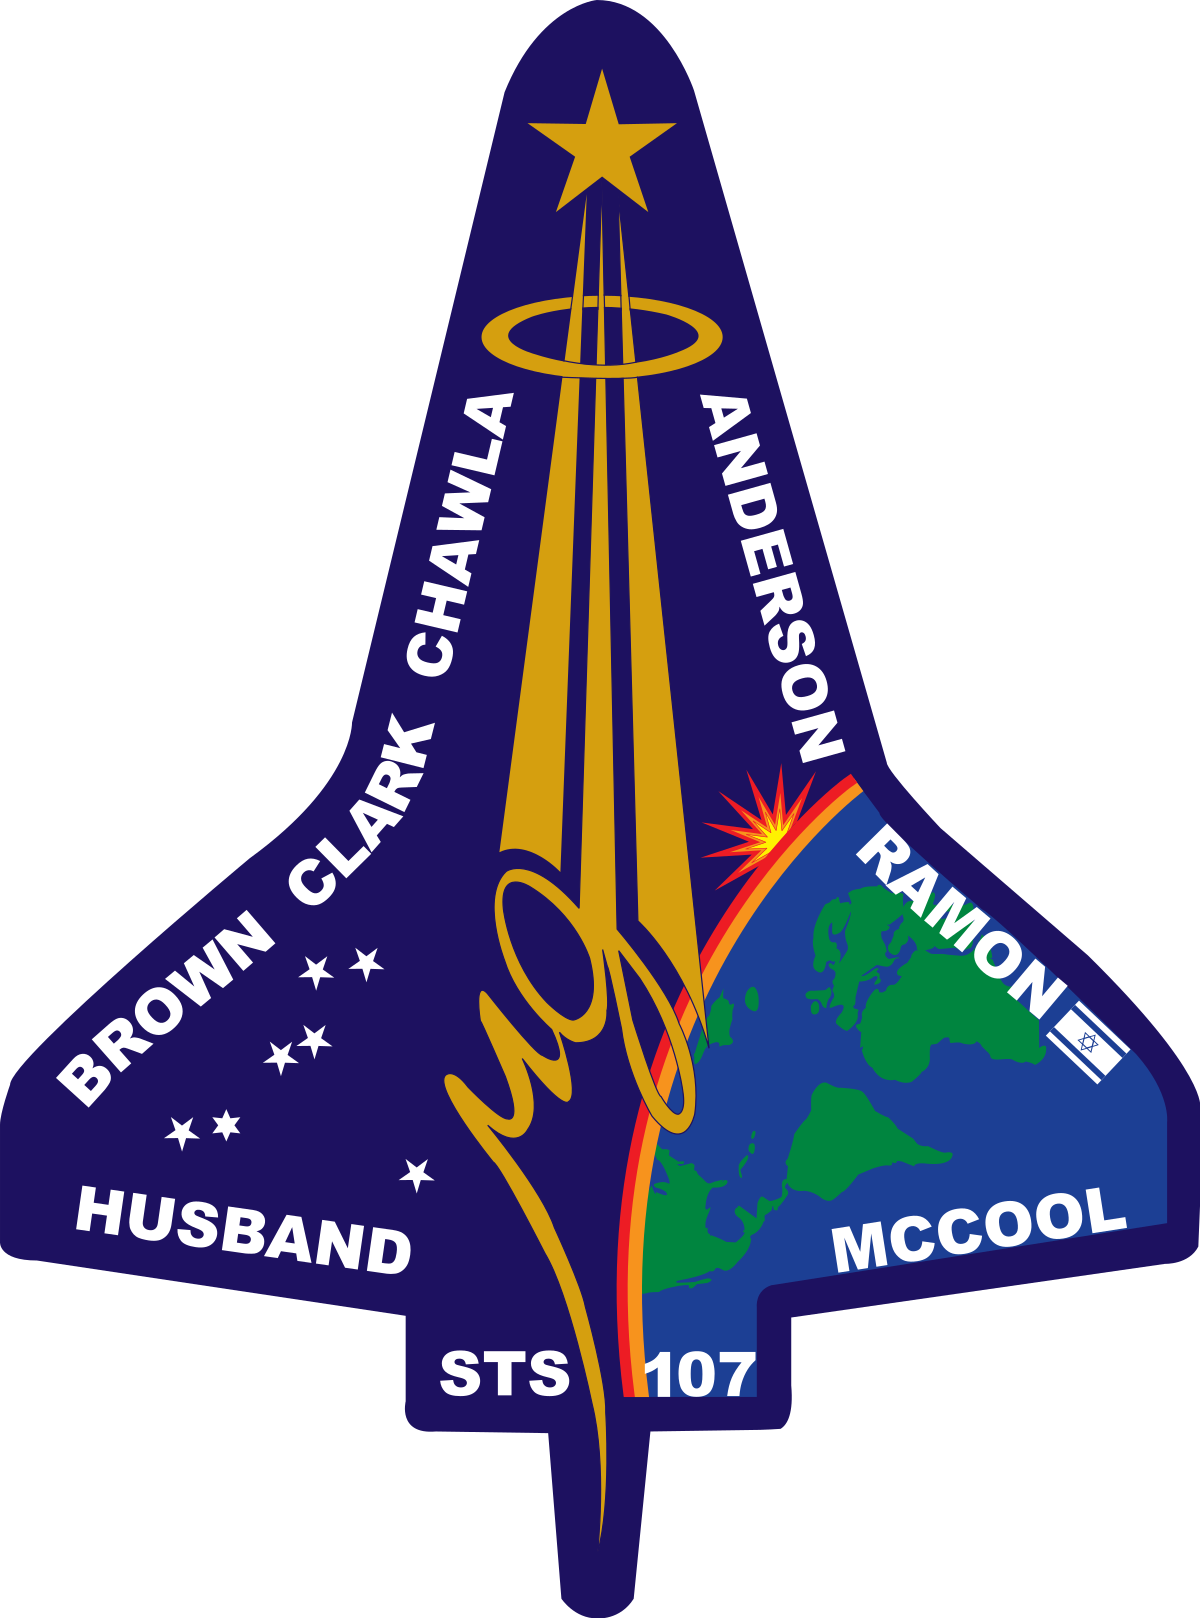 Debris falling png. Space shuttle columbia disaster